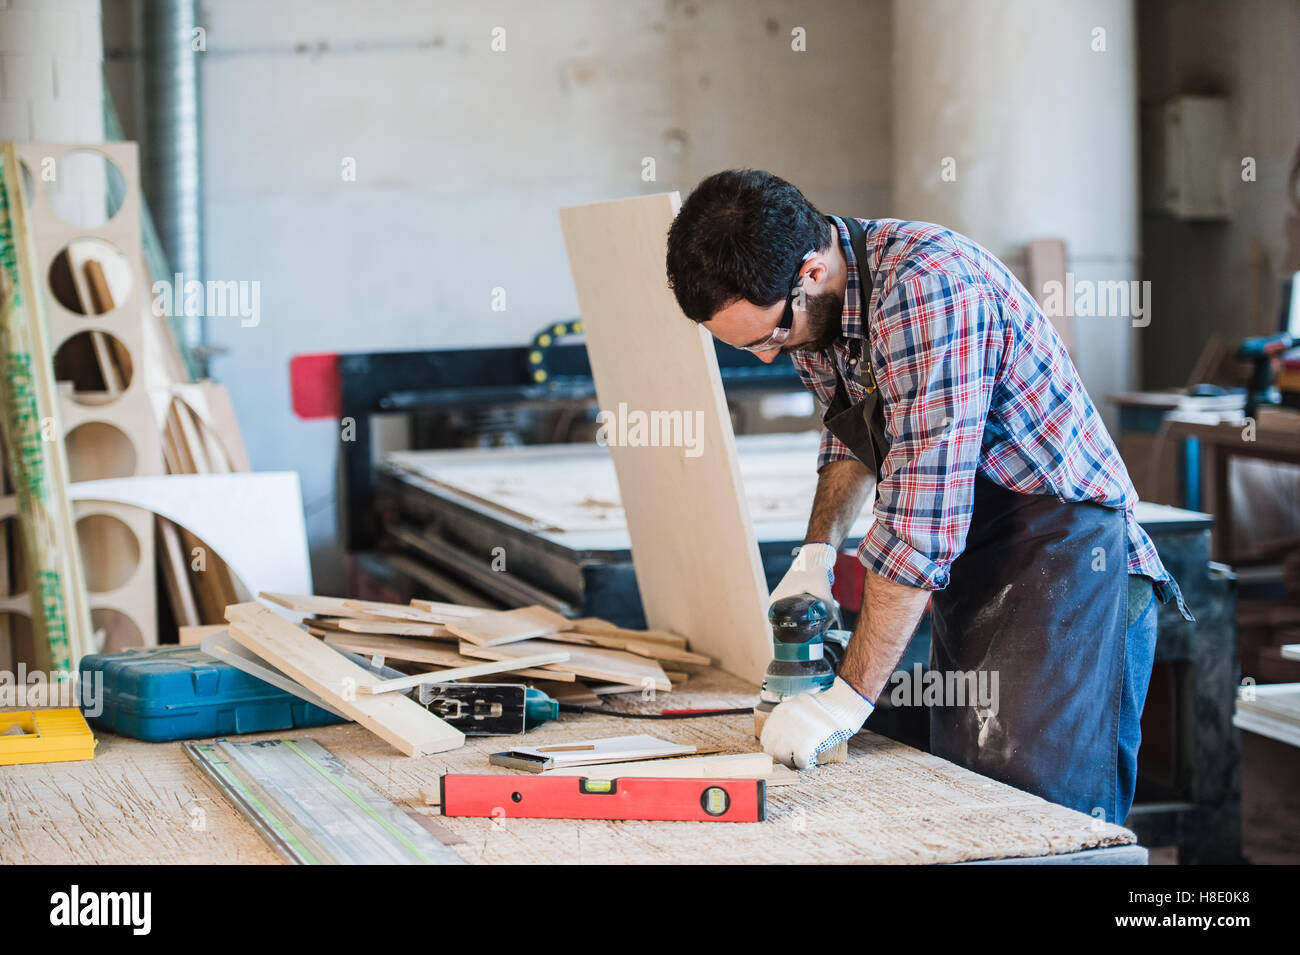 Carpenter with power grinder at his workshop - Stock Image